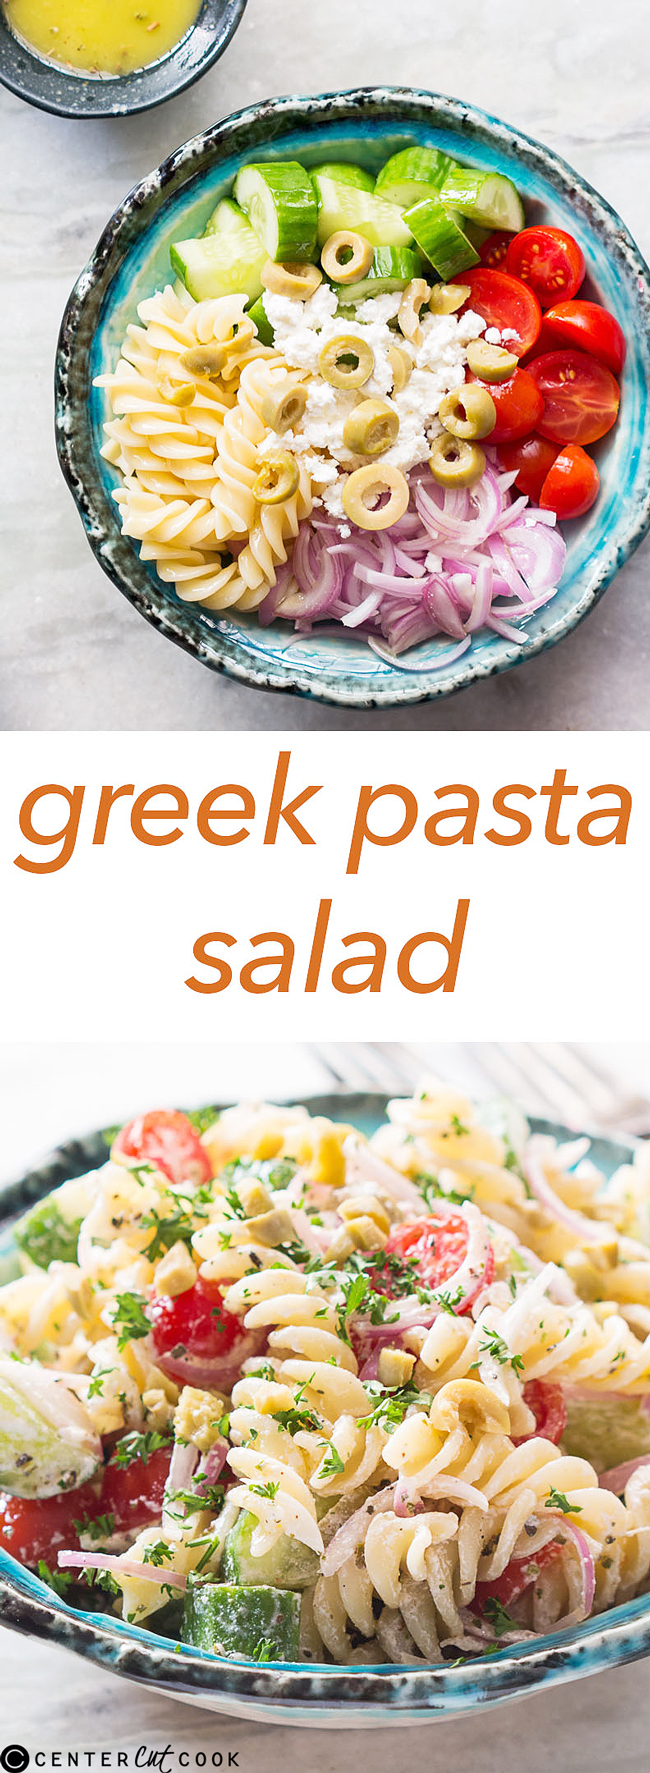 greek pasta salad pin